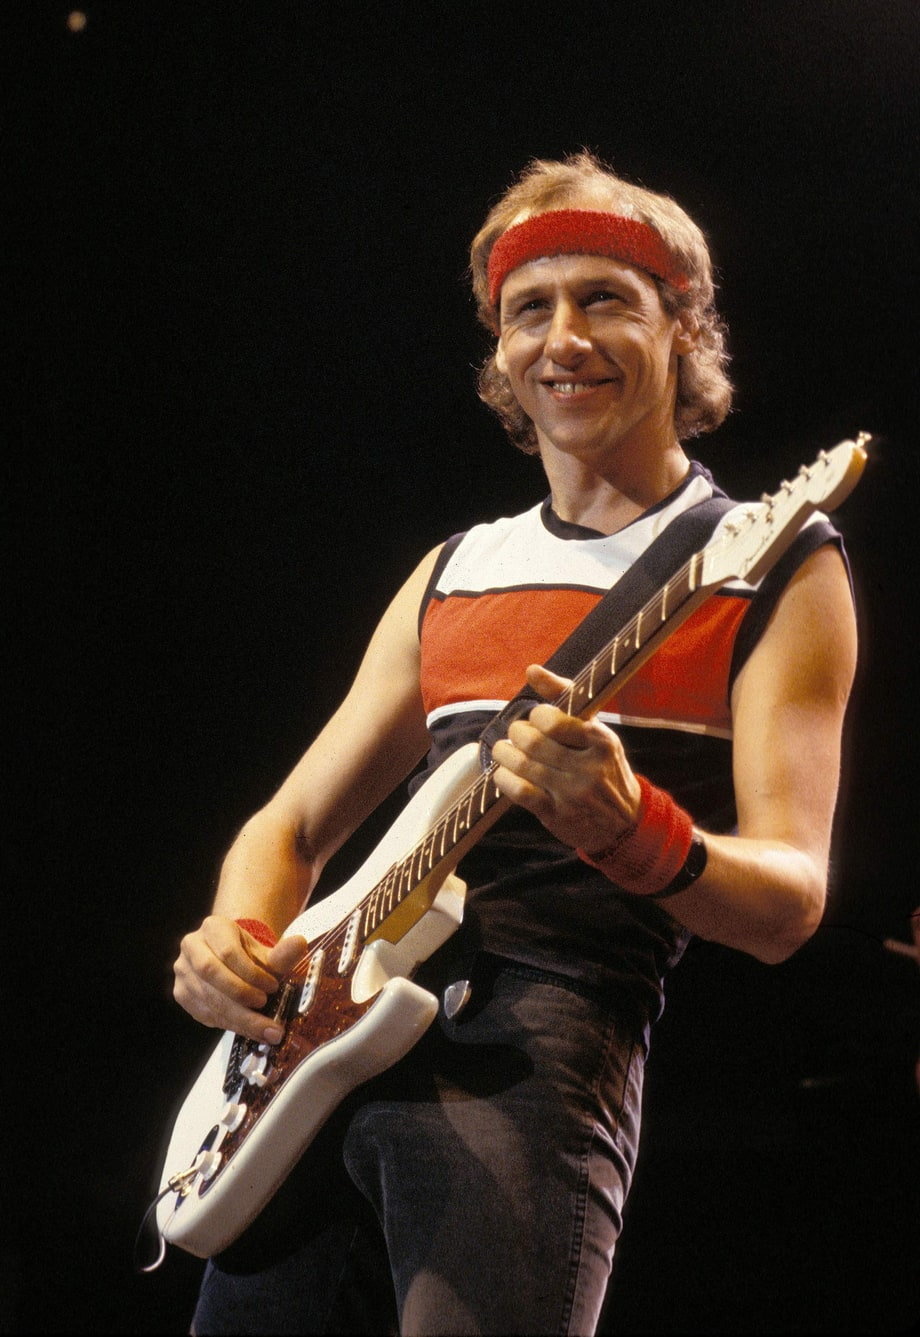 rs-126908-mark-knopfler-1800-1385140237.jpg